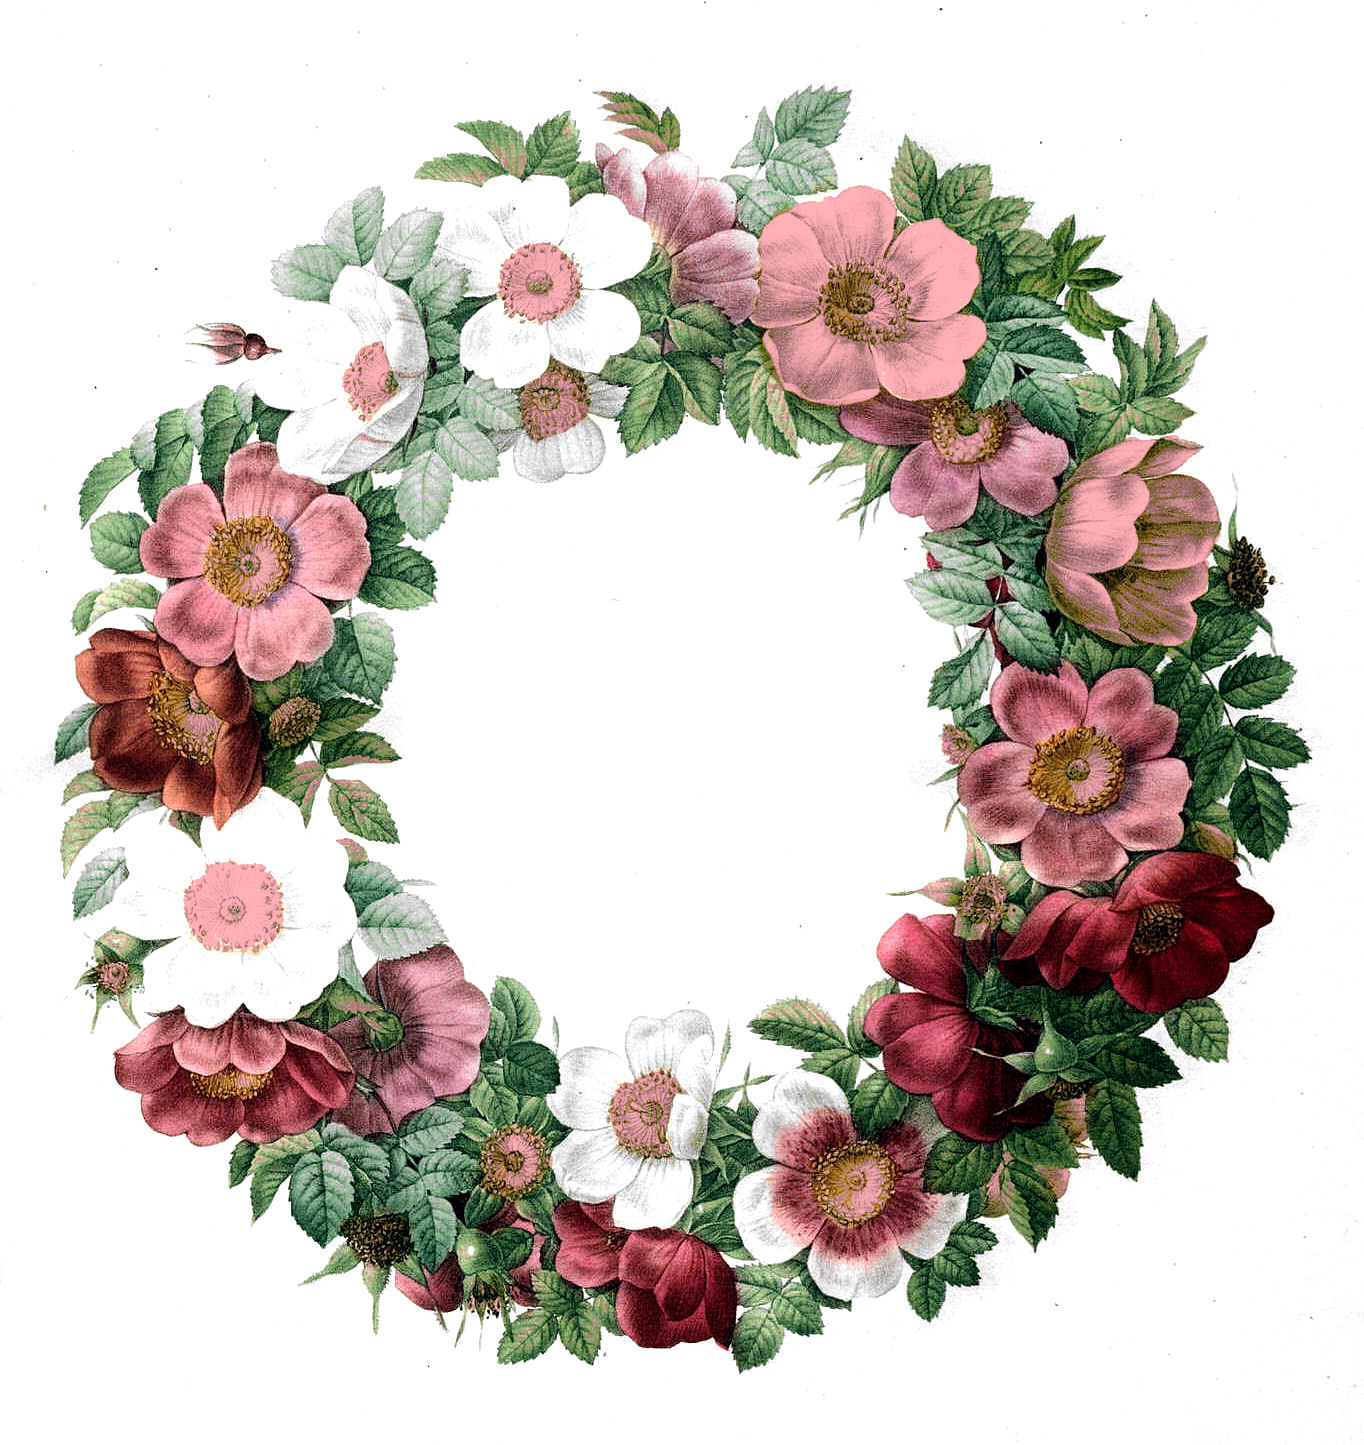 Wreath of flower clipart png clip royalty free stock Wreath of flowers clipart - ClipartFest clip royalty free stock